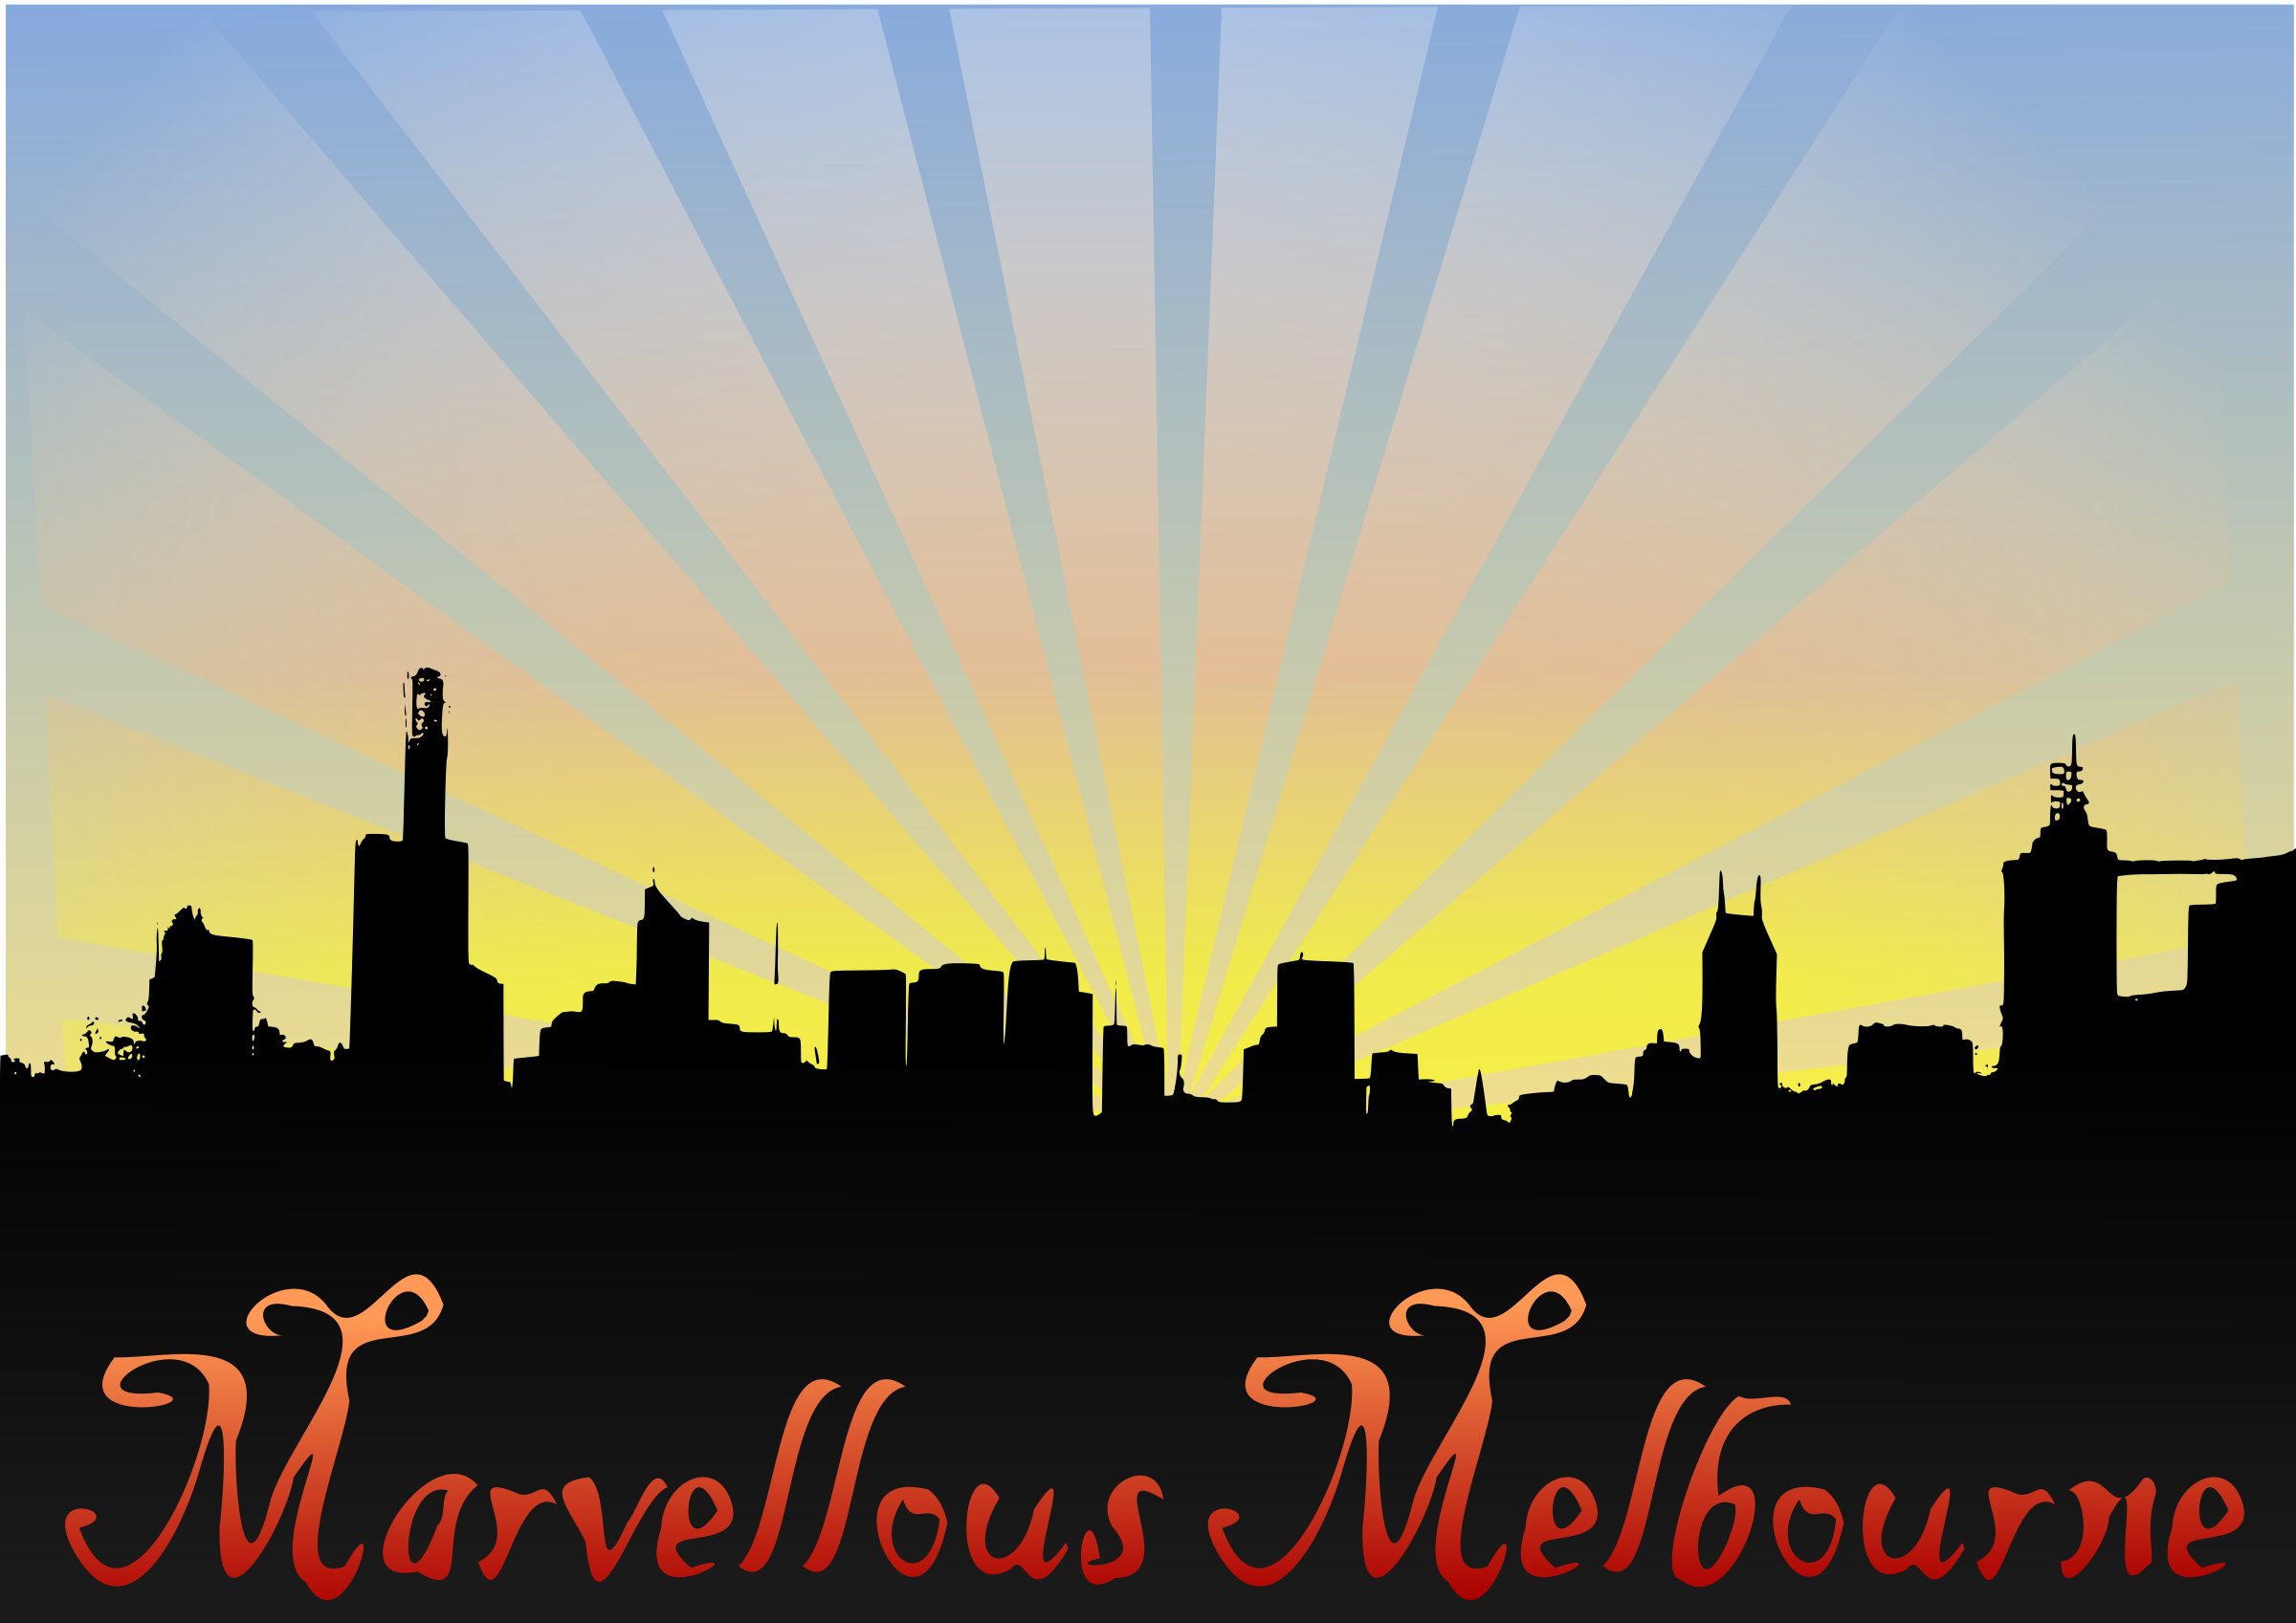 Marvellouse Melbourne by kattekrab